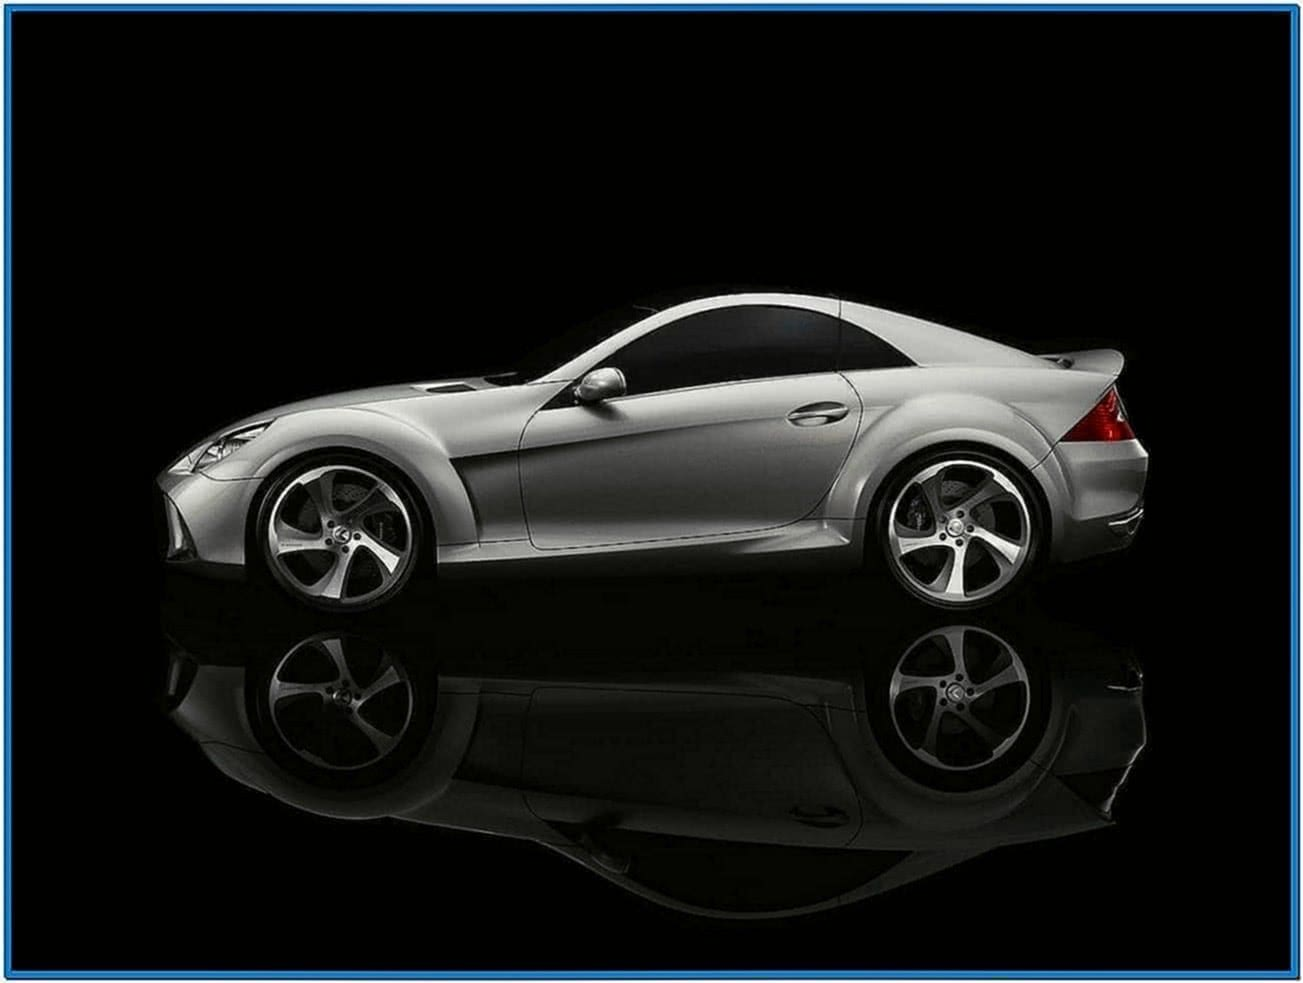 Mercedes Benz Slk Screensaver Download Free